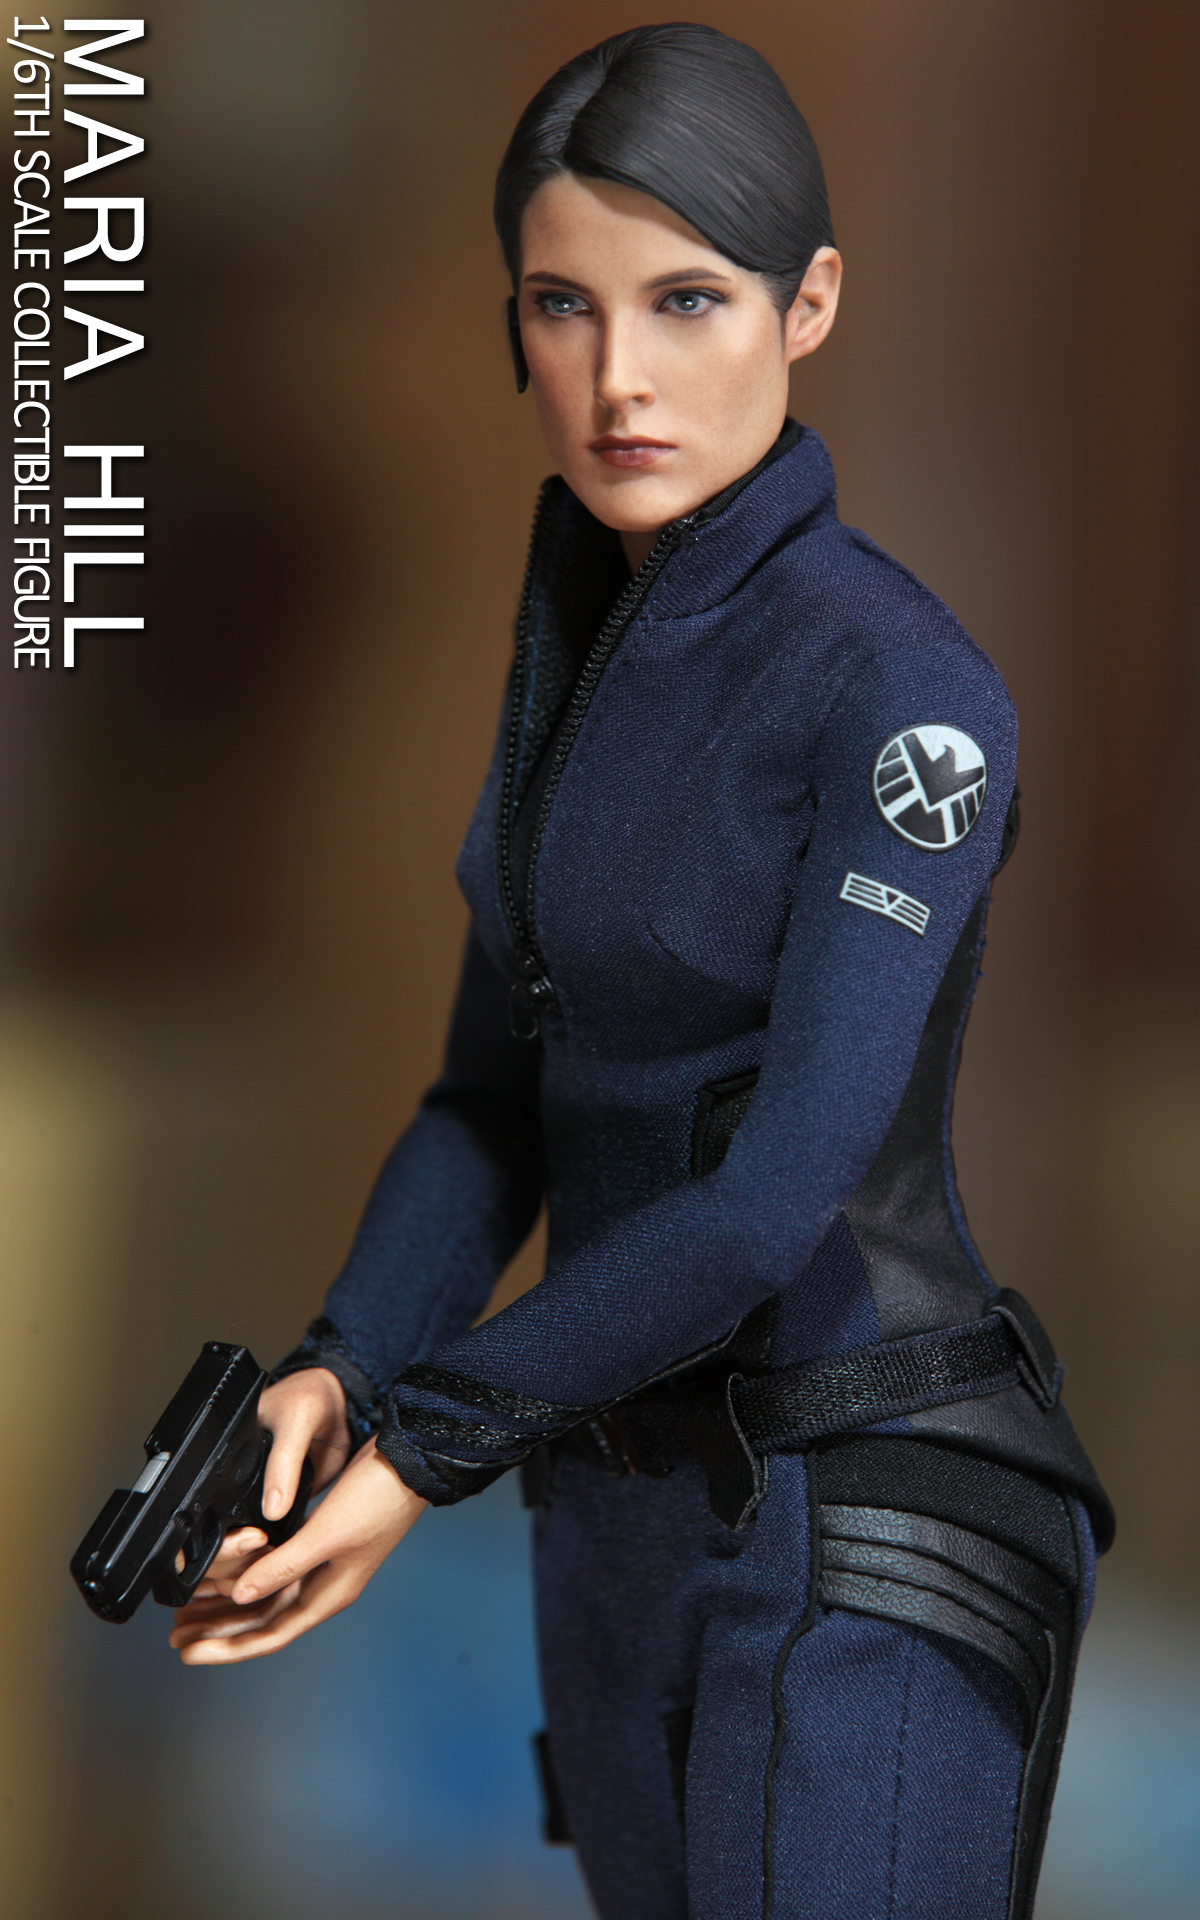 hottoys-avengers-age-of-ultron-maria-hill-picture09